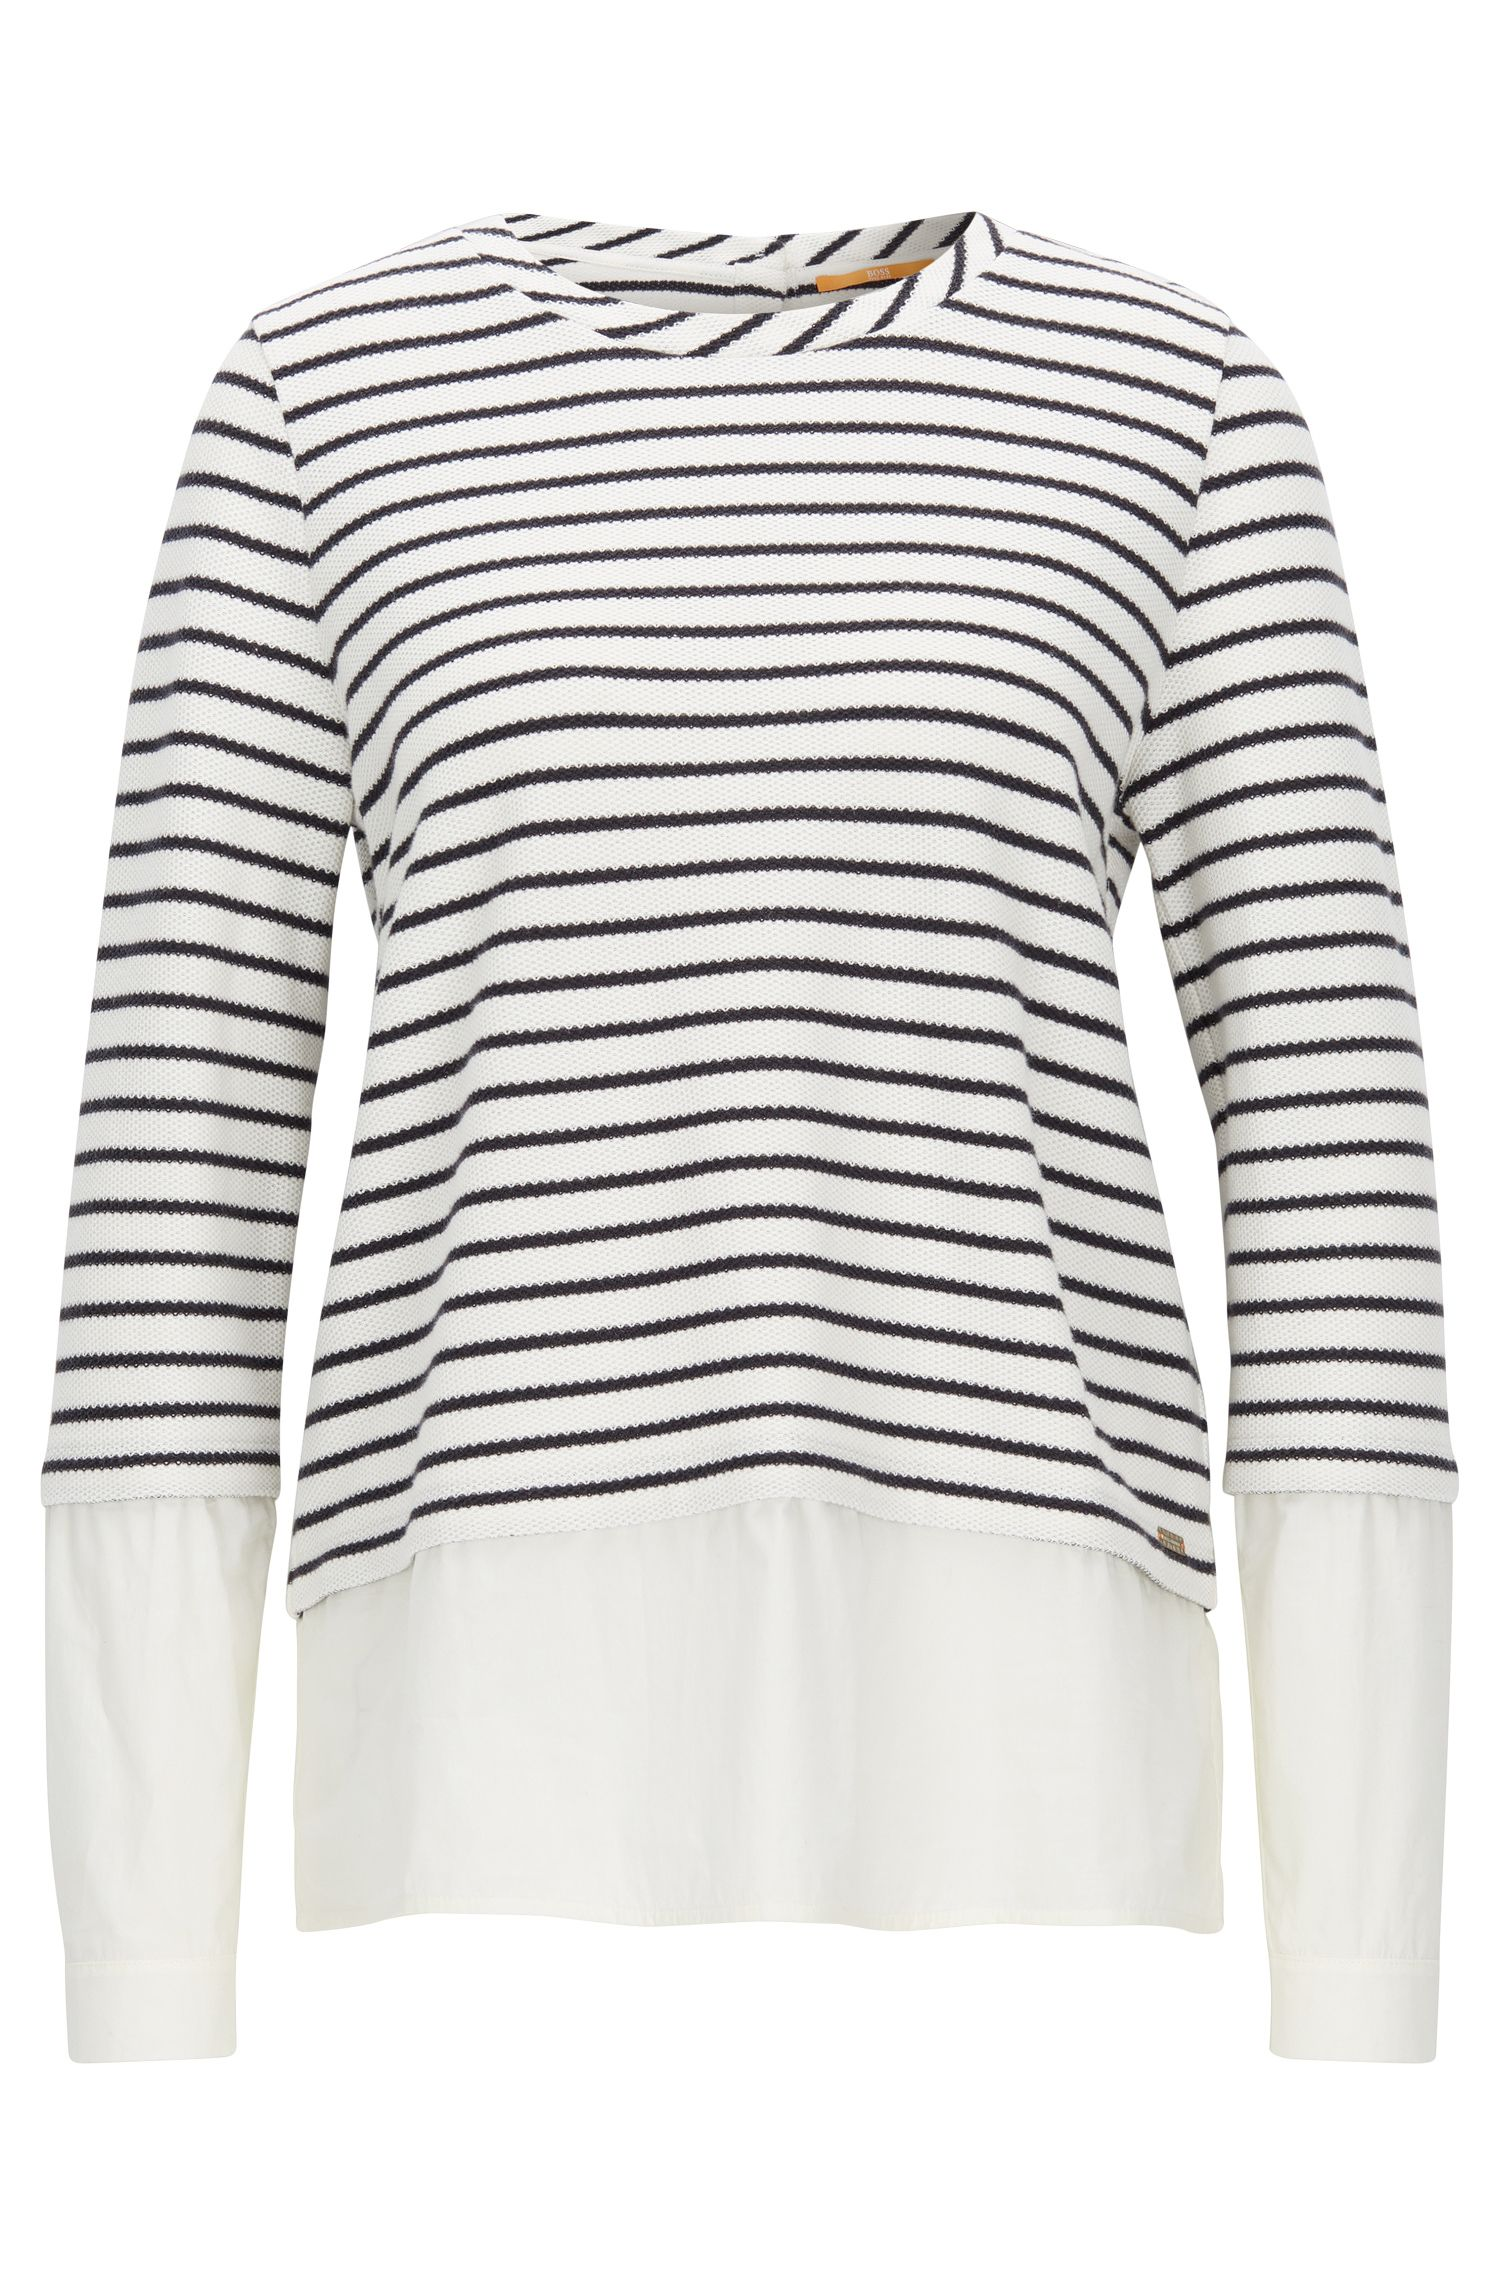 Striped sweater with poplin shirt layer